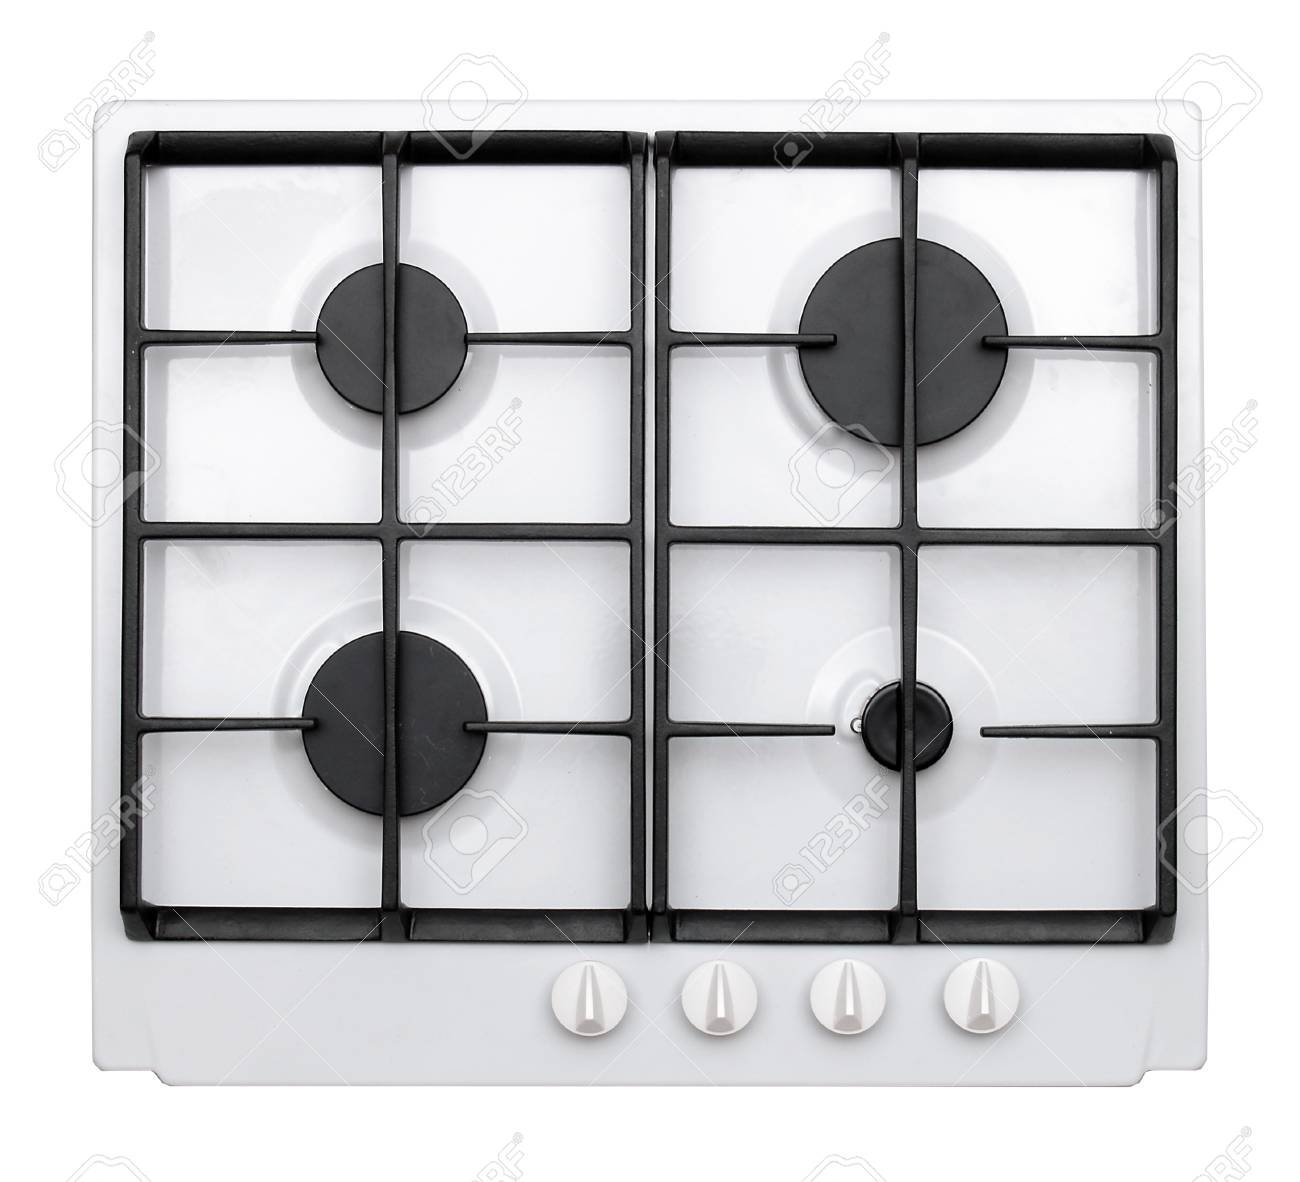 Gas hob isolated on white Stock Photo - 26881489